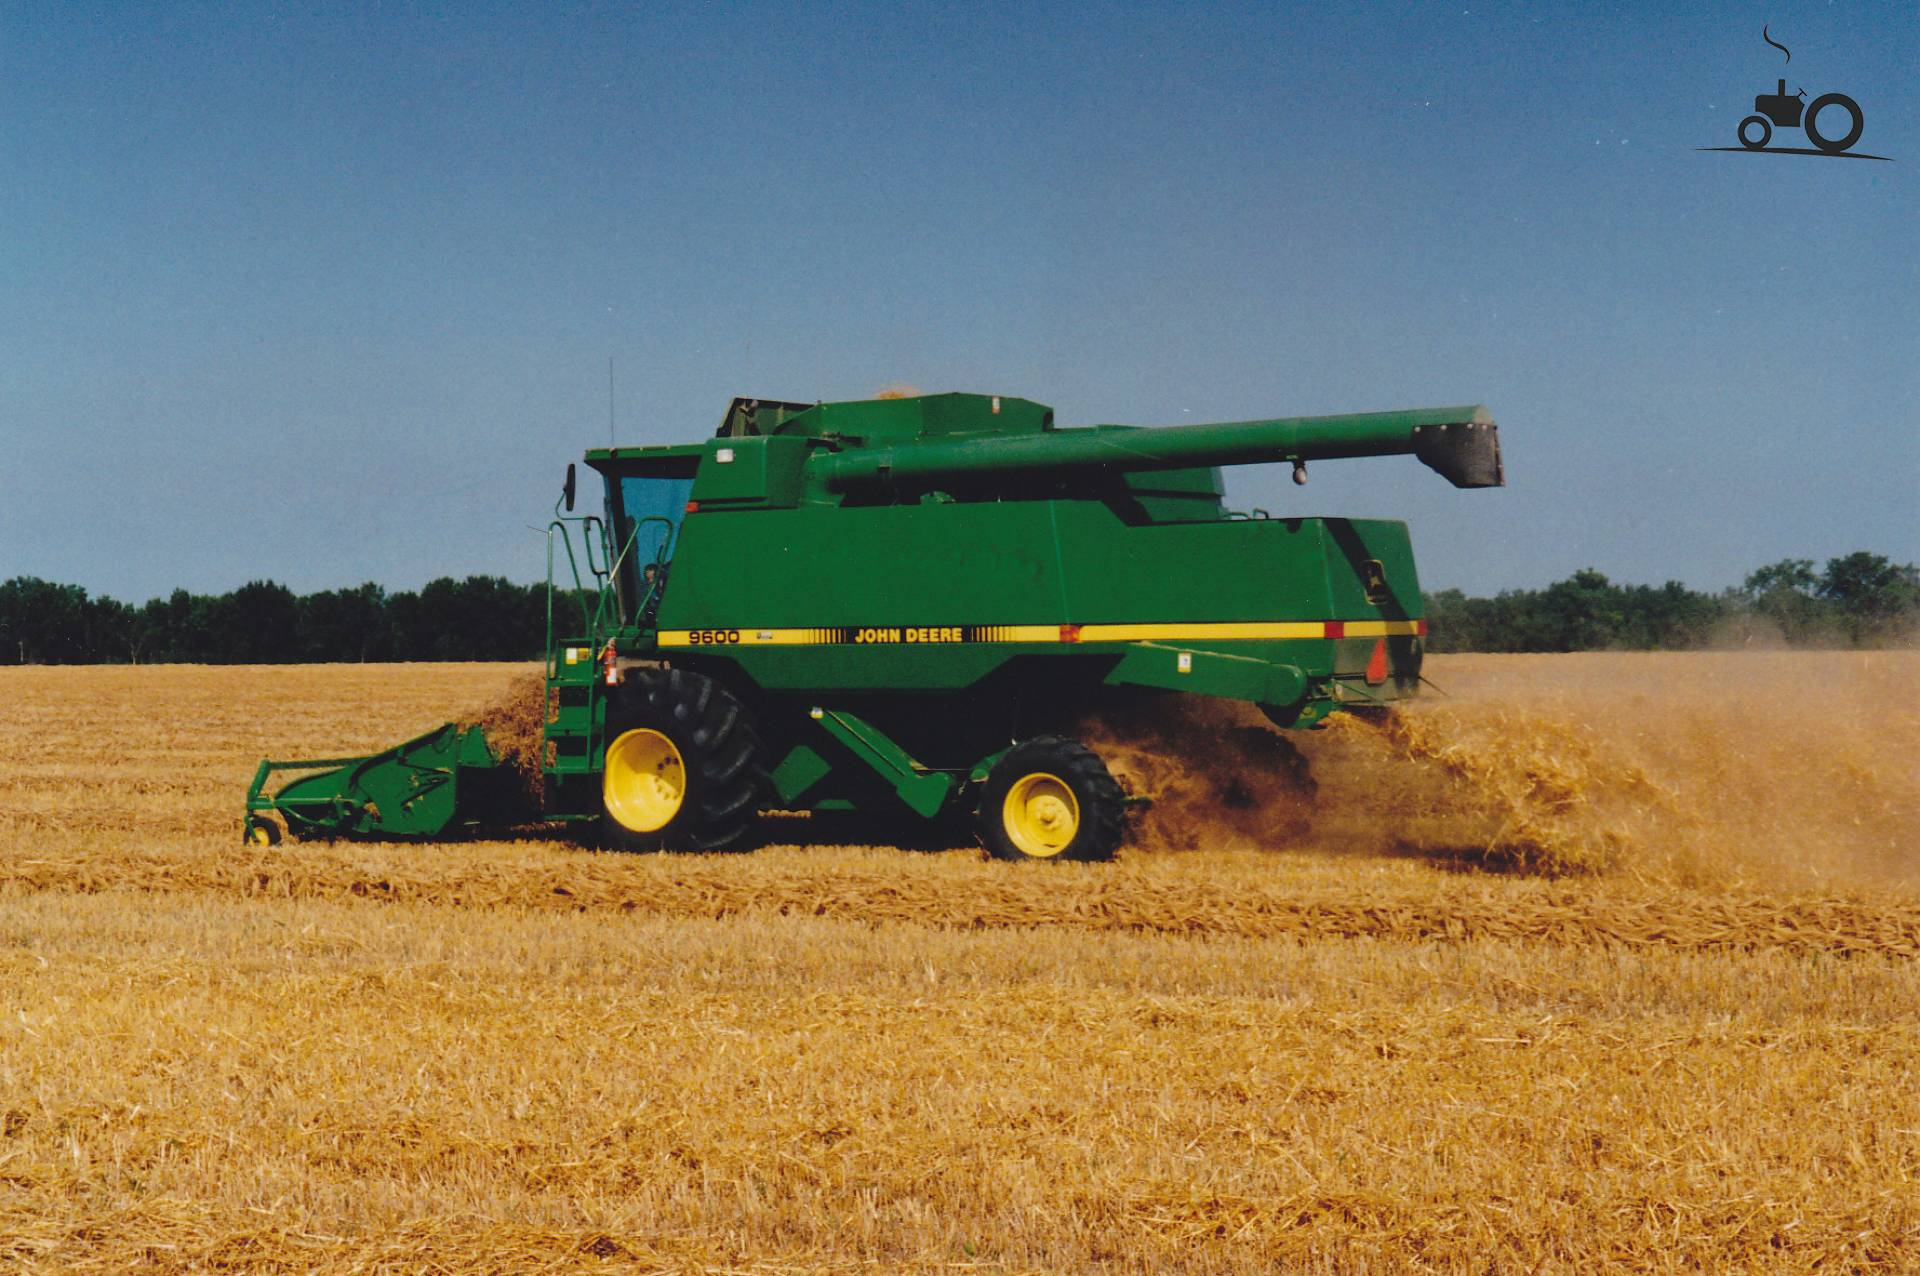 John deere 9600 specs and data everything about the john deere 9600